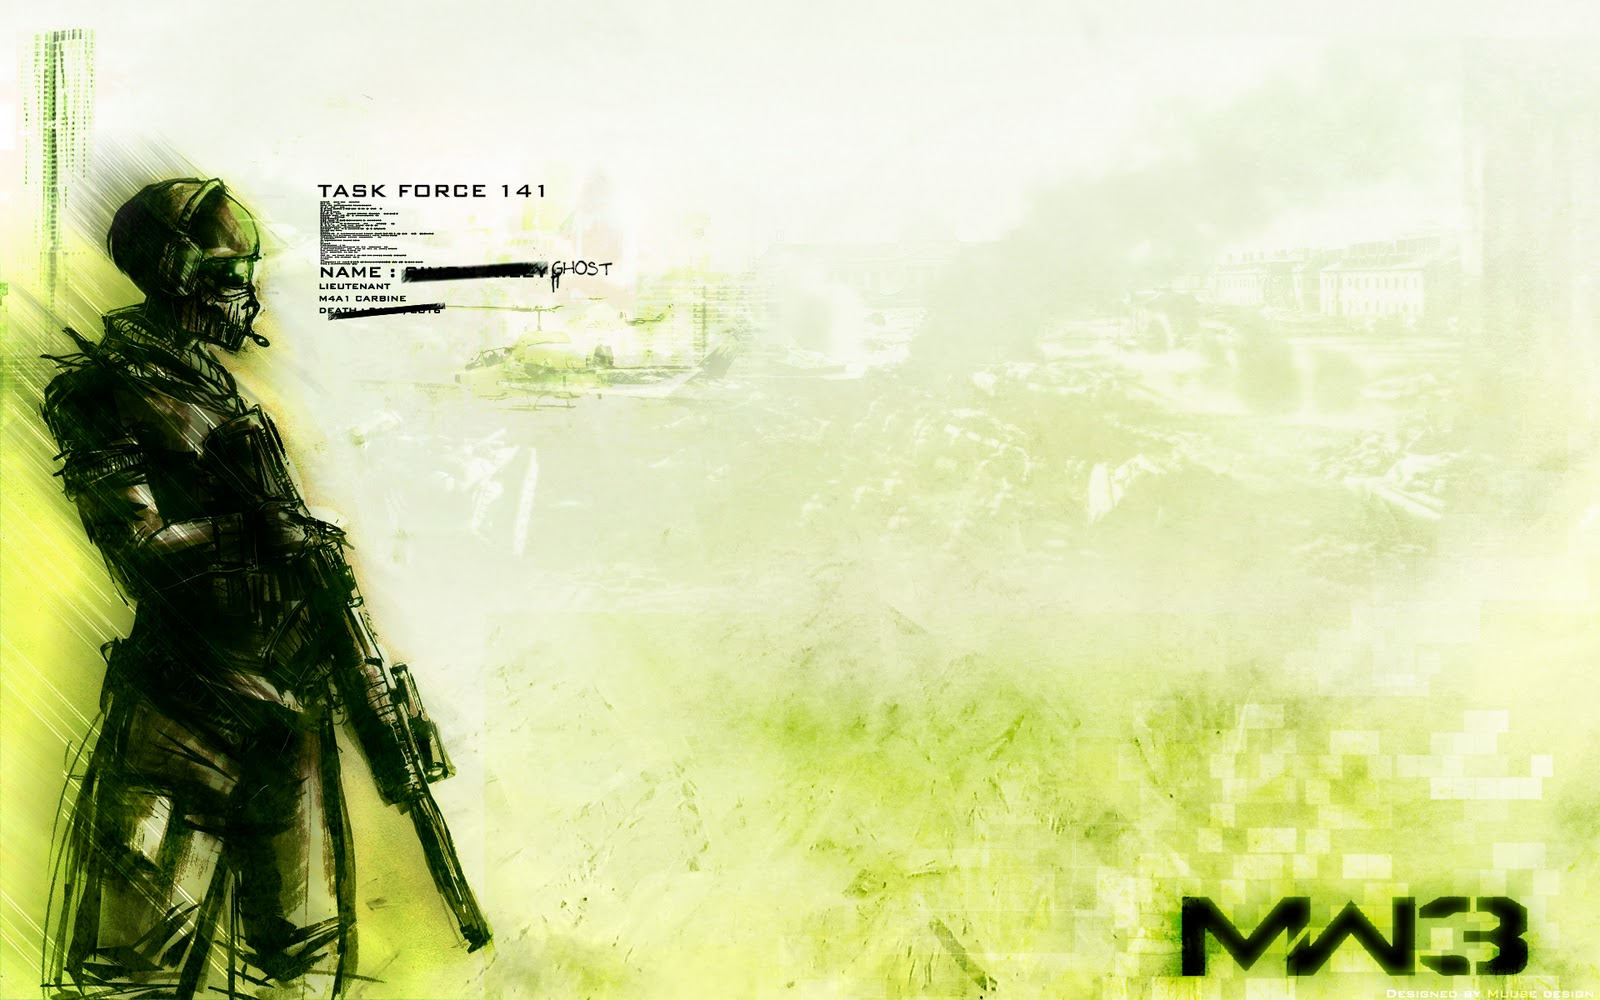 August 2011 archives picture insights august 2011 - Mw3 wallpaper ...